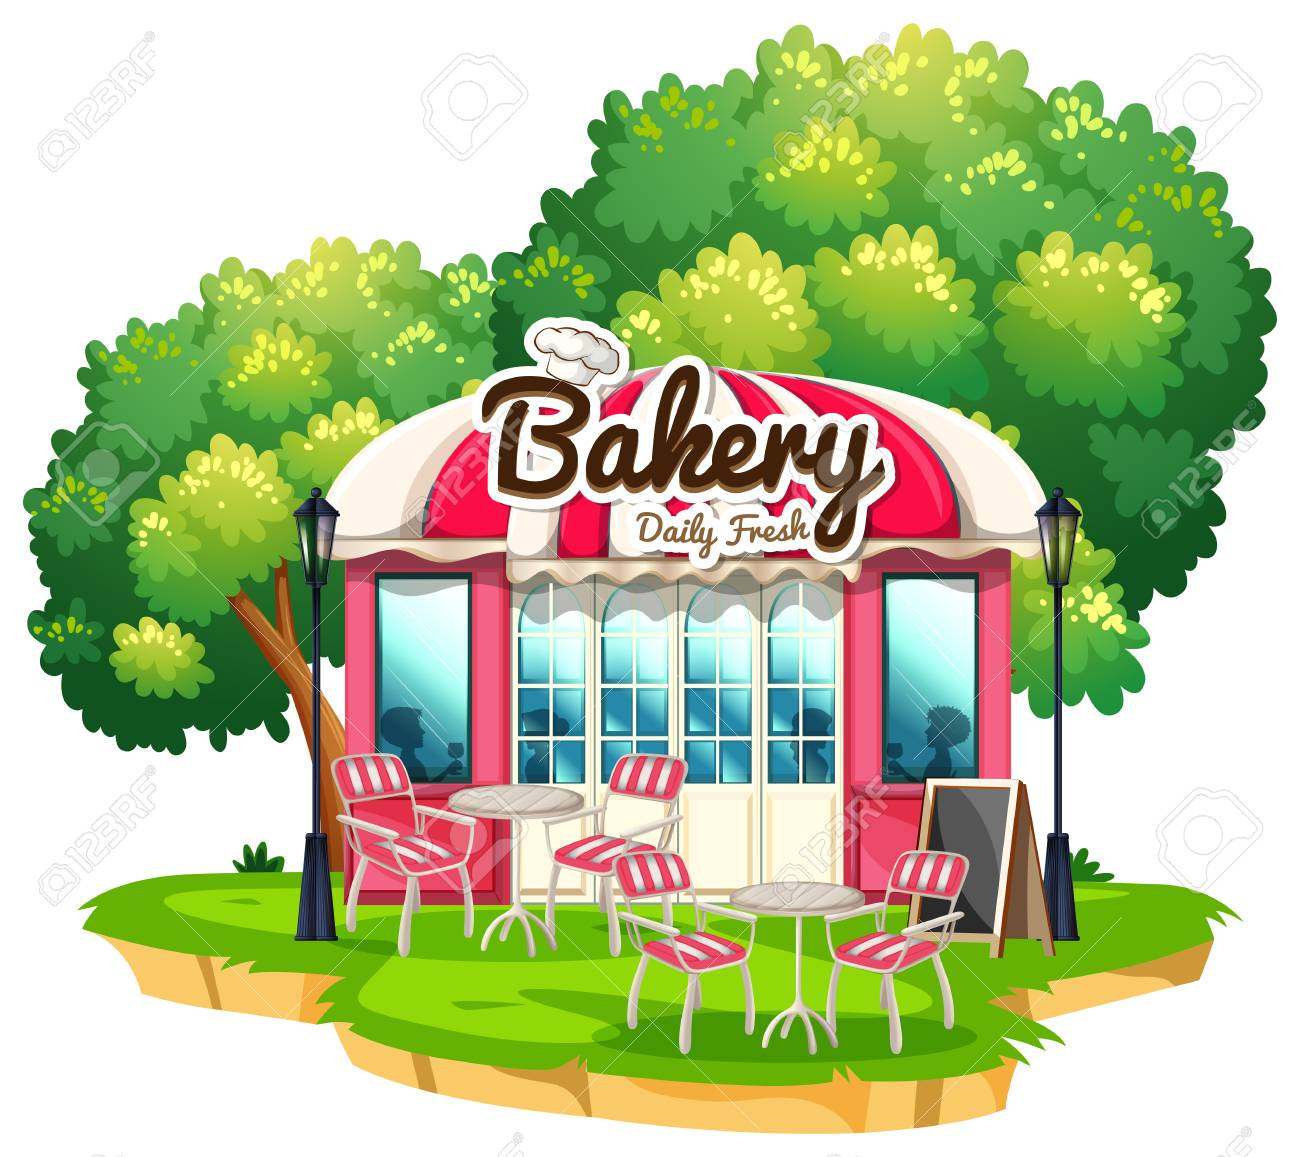 Bakery shop with dining tables illustration.